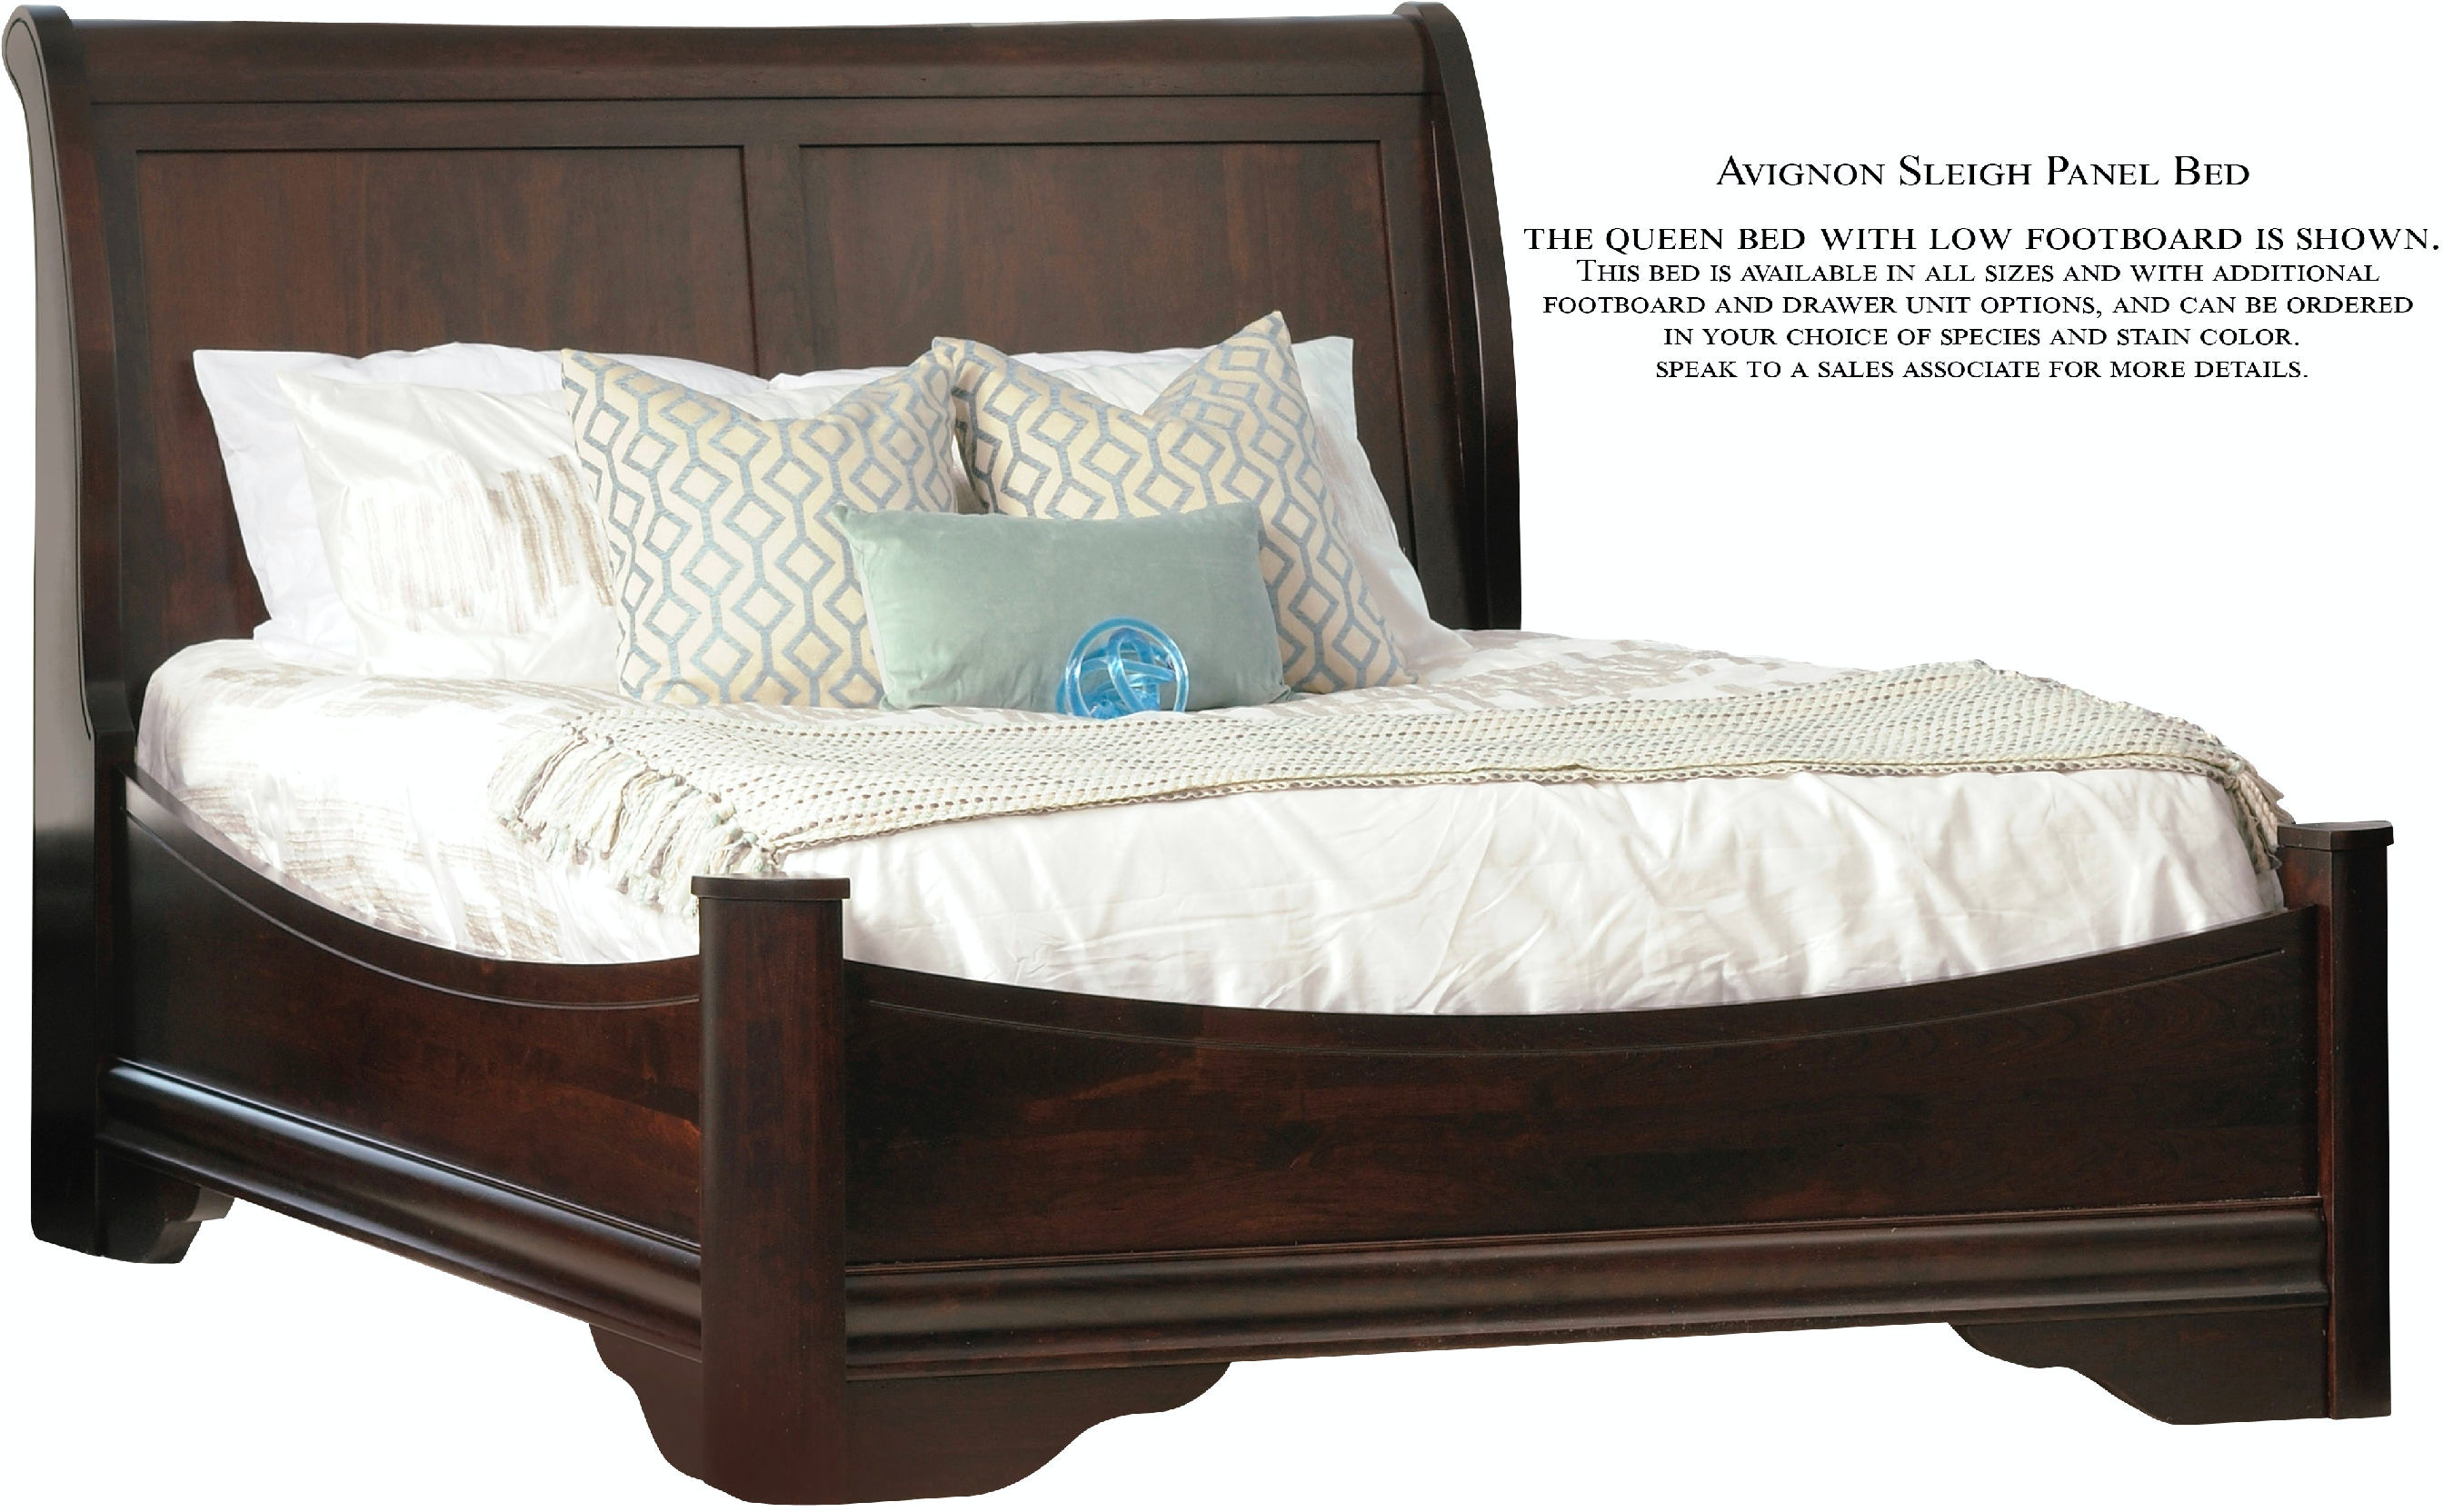 avignon sleigh panel bed with low footboard